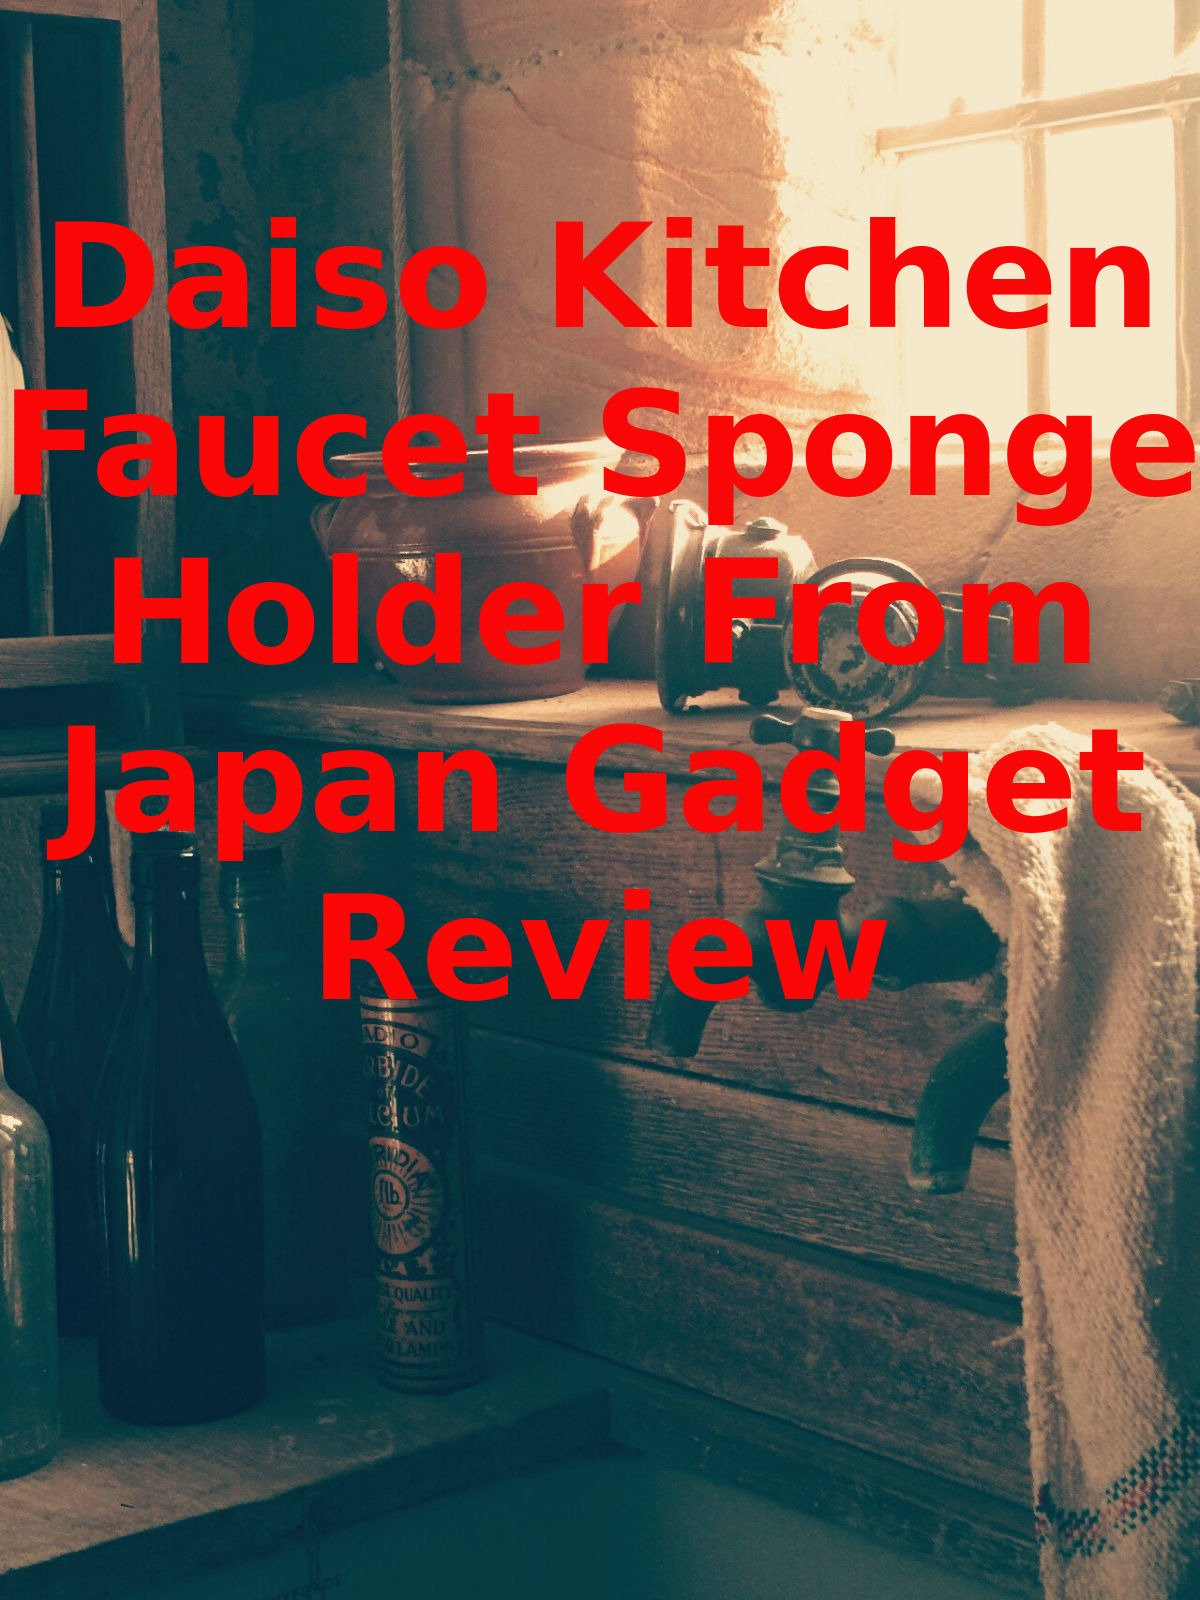 Review: Daiso Kitchen Faucet Sponge Holder From Japan Gadget Review